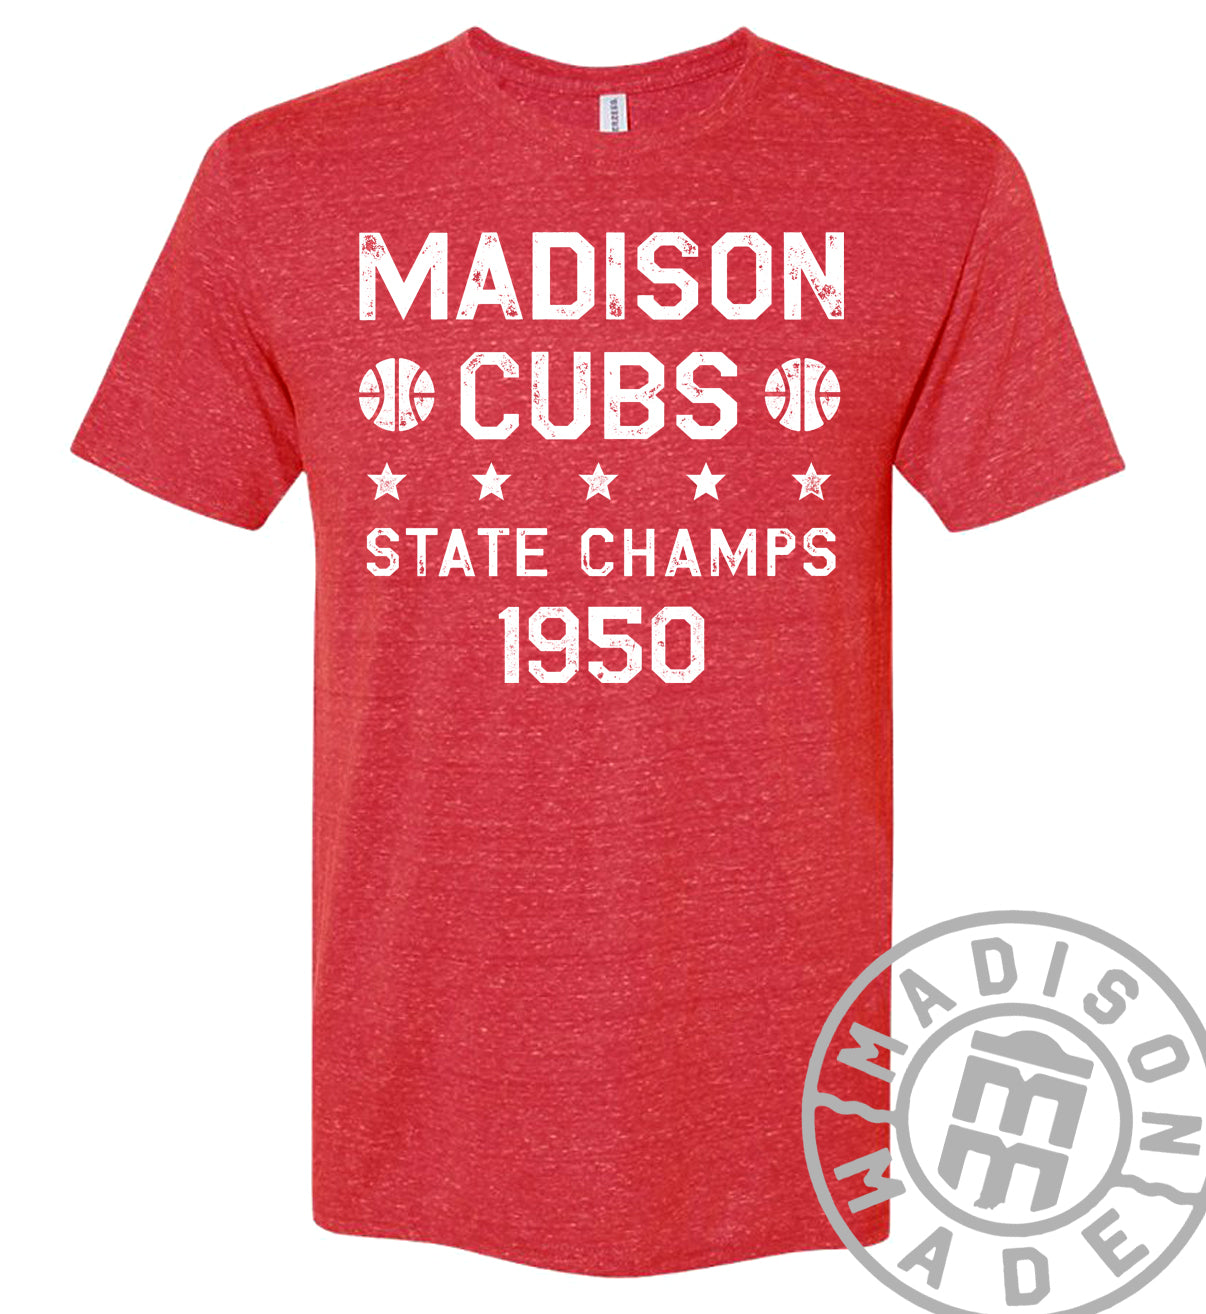 Madison Cubs State Champs Tee